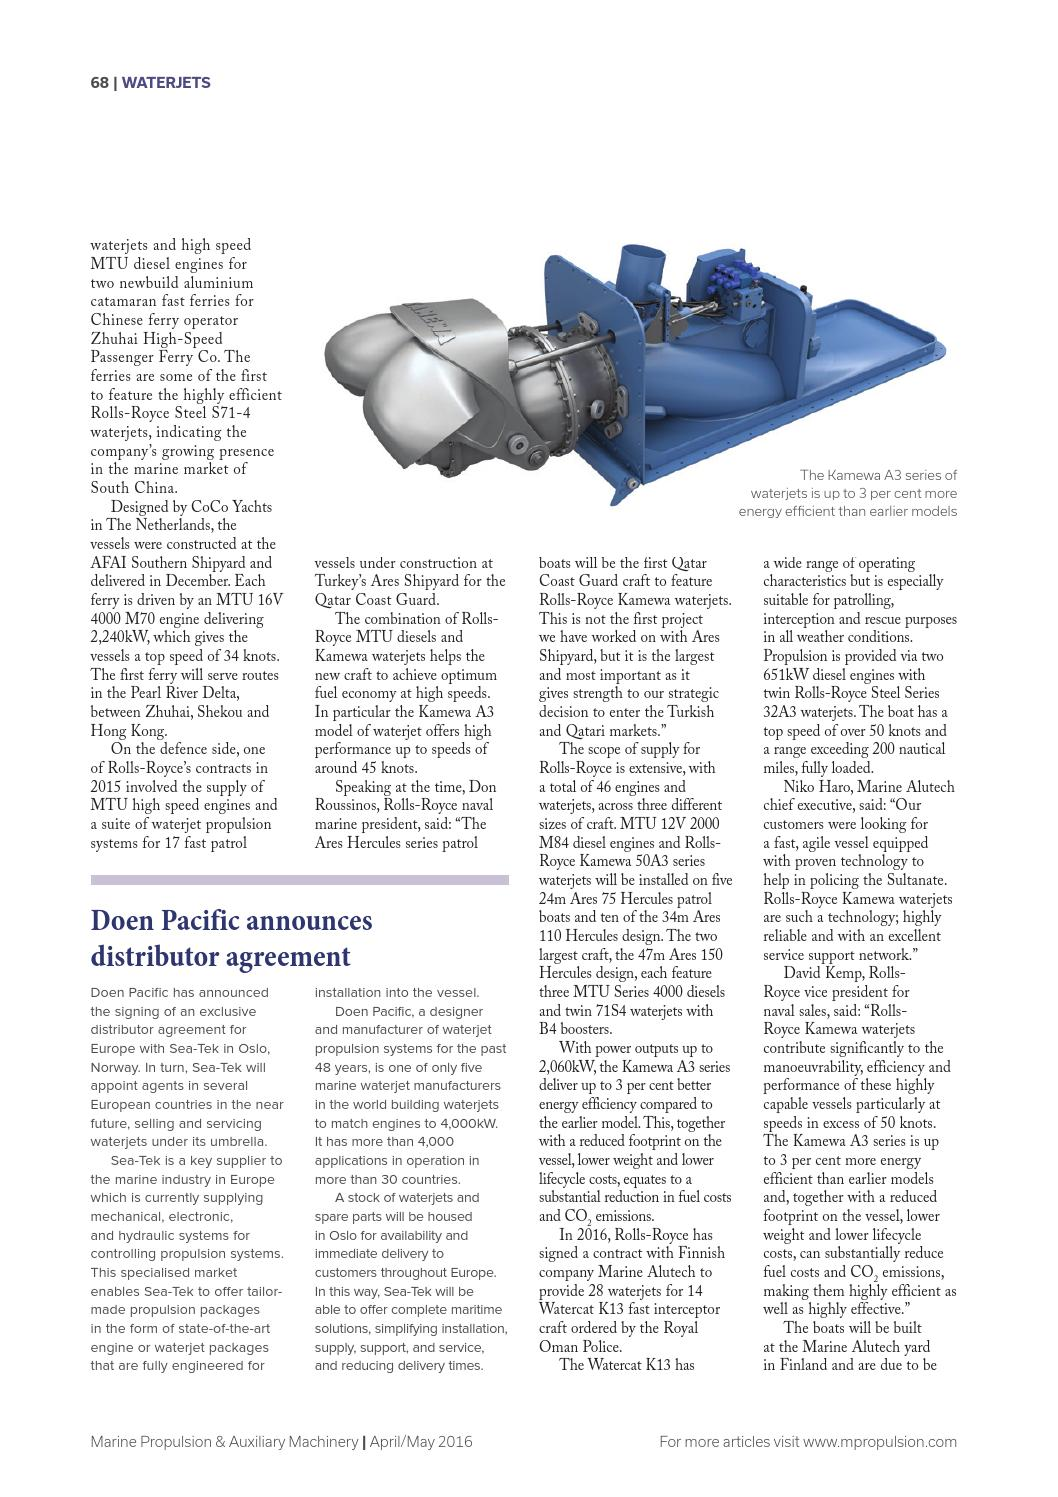 Marine Propulsion & Auxiliary Machinery Apr-May16 by